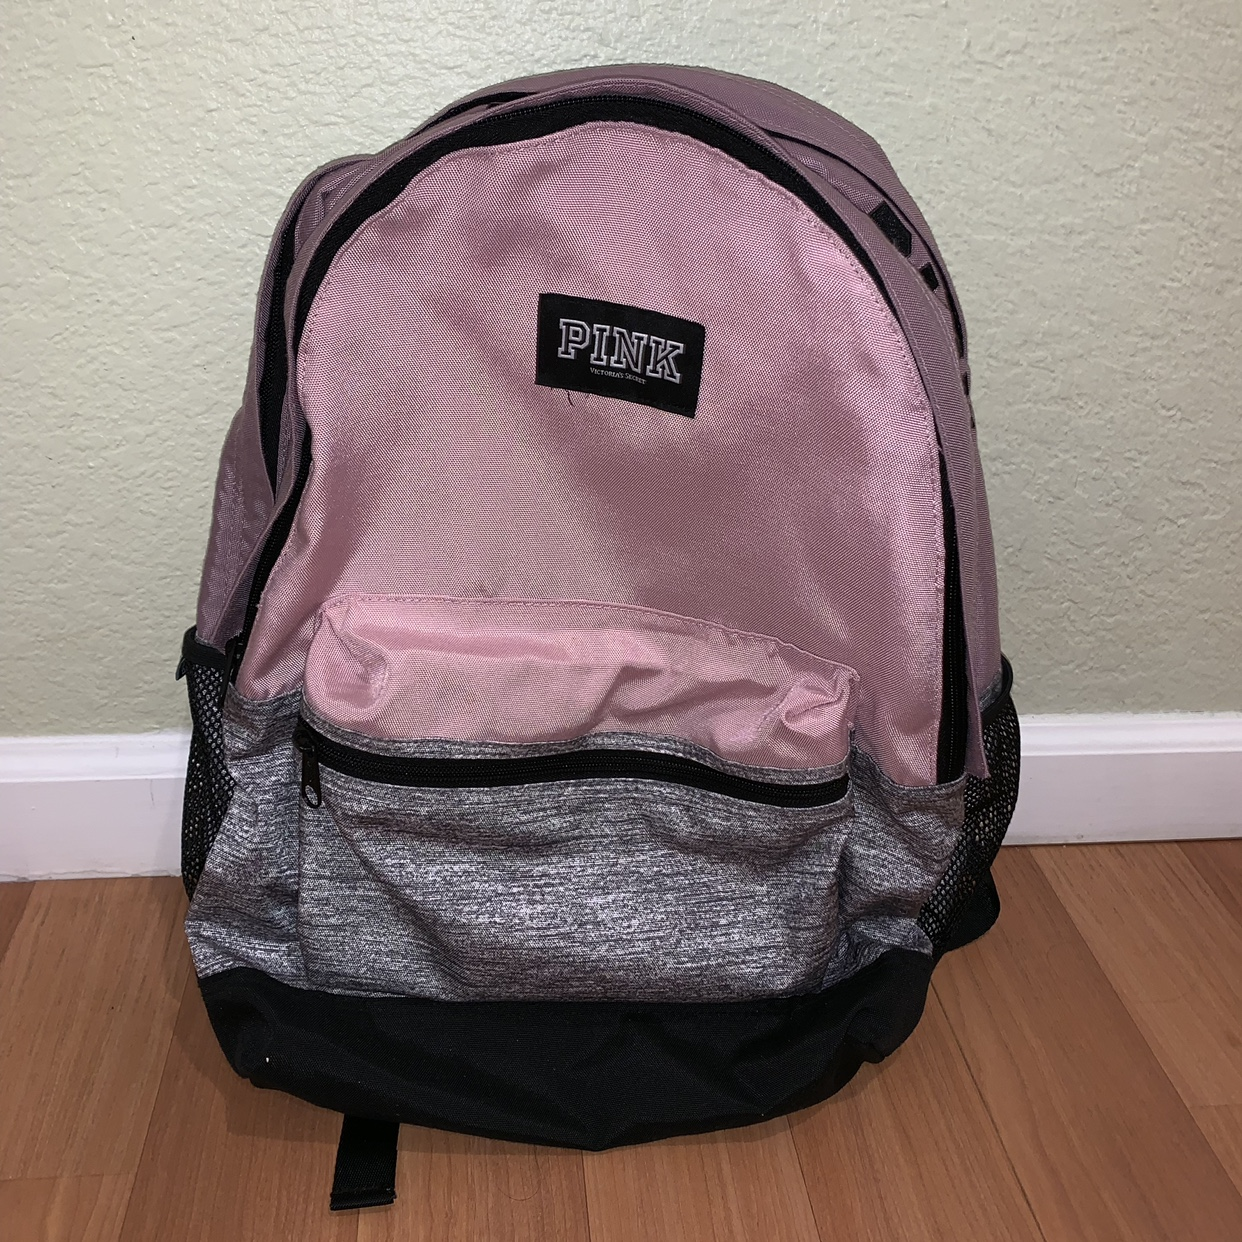 e88b9ef28ce6b Victoria's Secret PINK Backpack ⭐ used only for 1... - Depop